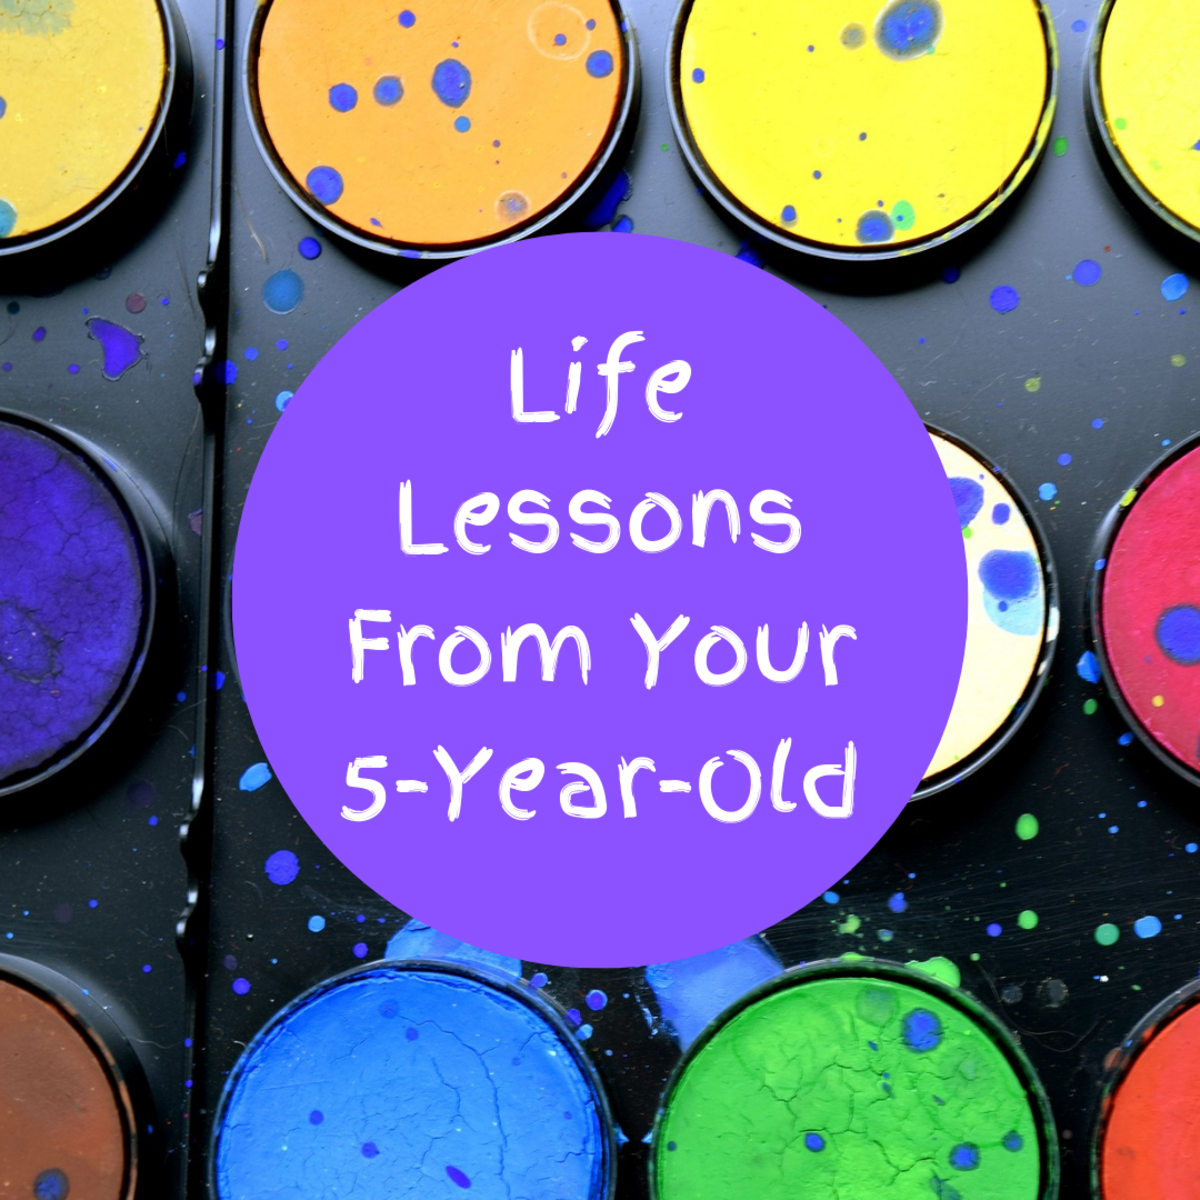 What Can Your 5-Year-Old Teach You?